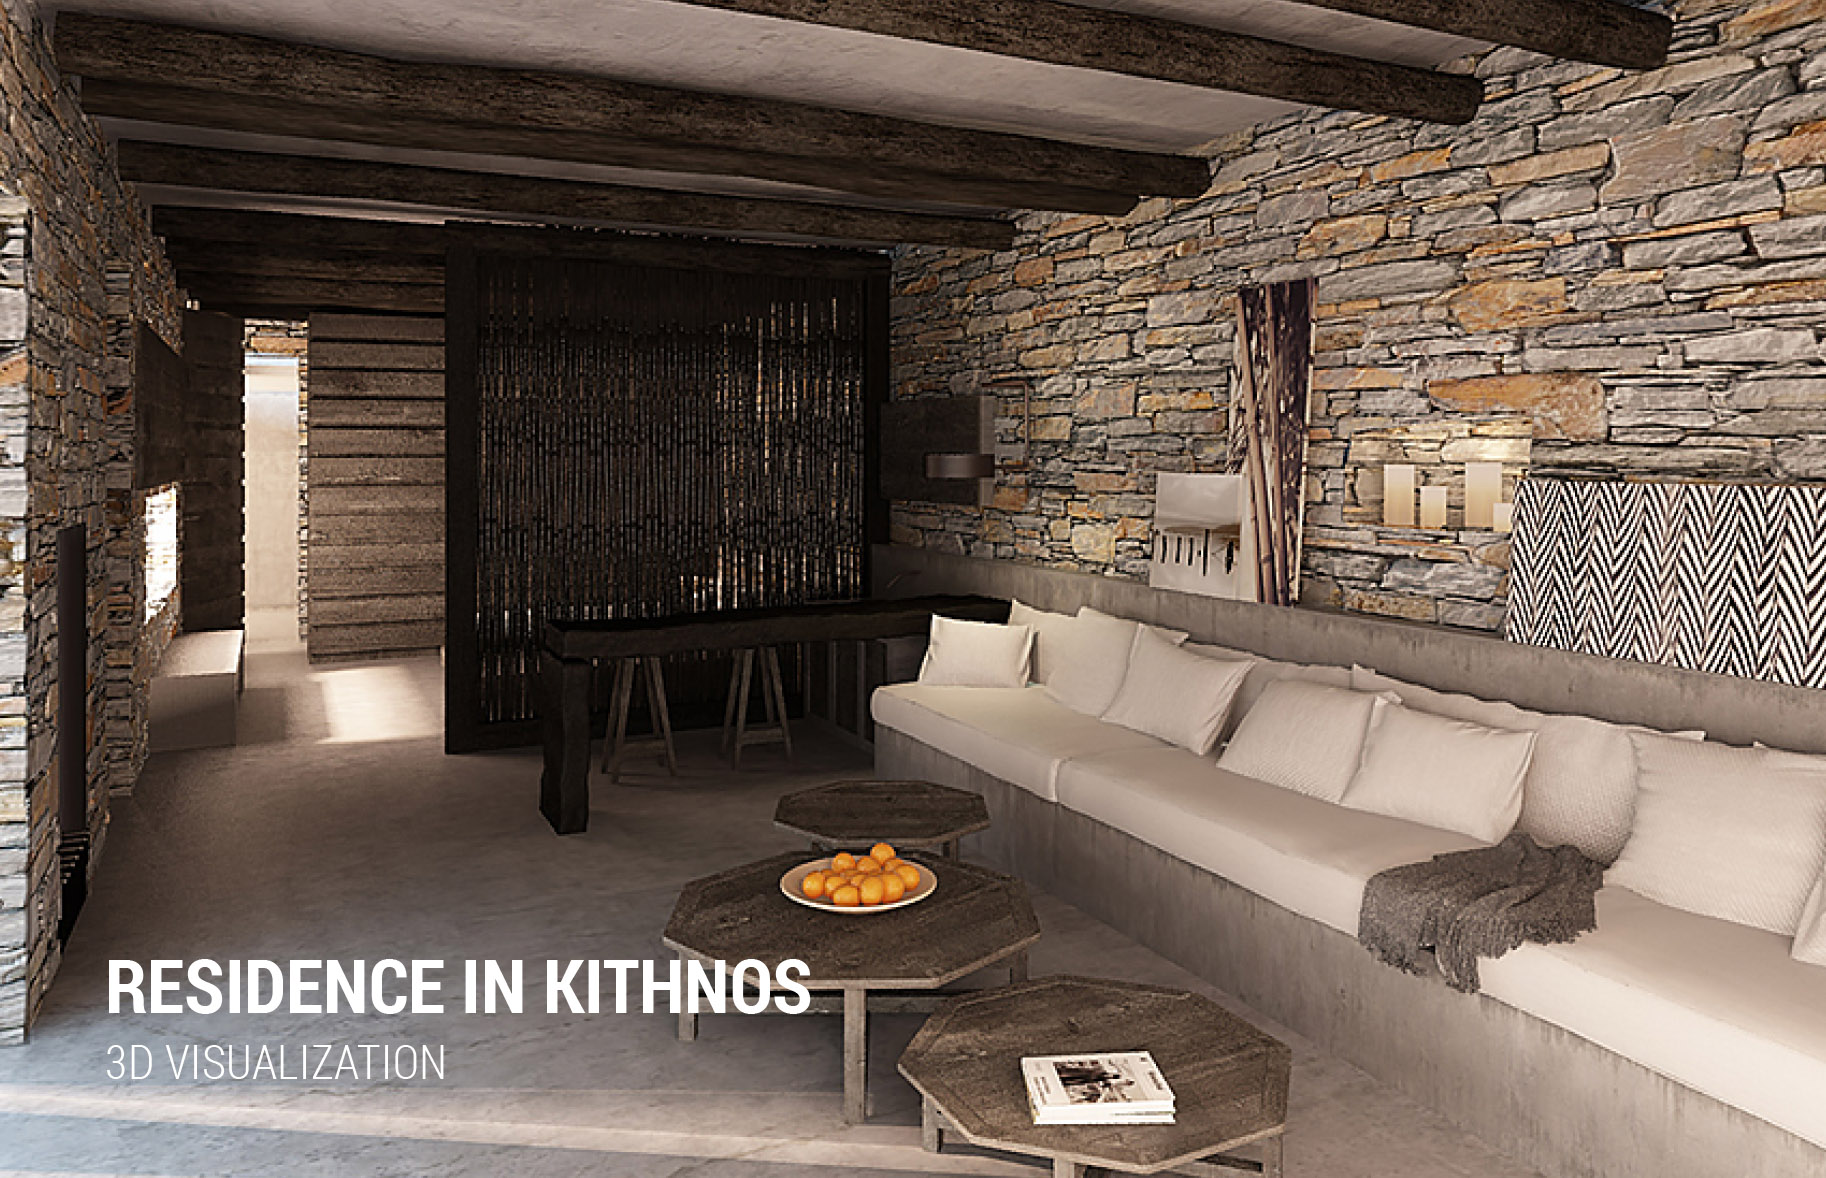 Schema Dimitra Chrona designer, creative director, architectural, 3D visualization, 3D Rendering, branding websites, digital, graphic design, interior design, real estate, luxury property, staging, museum, virtual, art, brochures, exhibitions, logotype, logo, Canada Quebec Montreal Athens Greece schema design kithnos residence large over.jpg